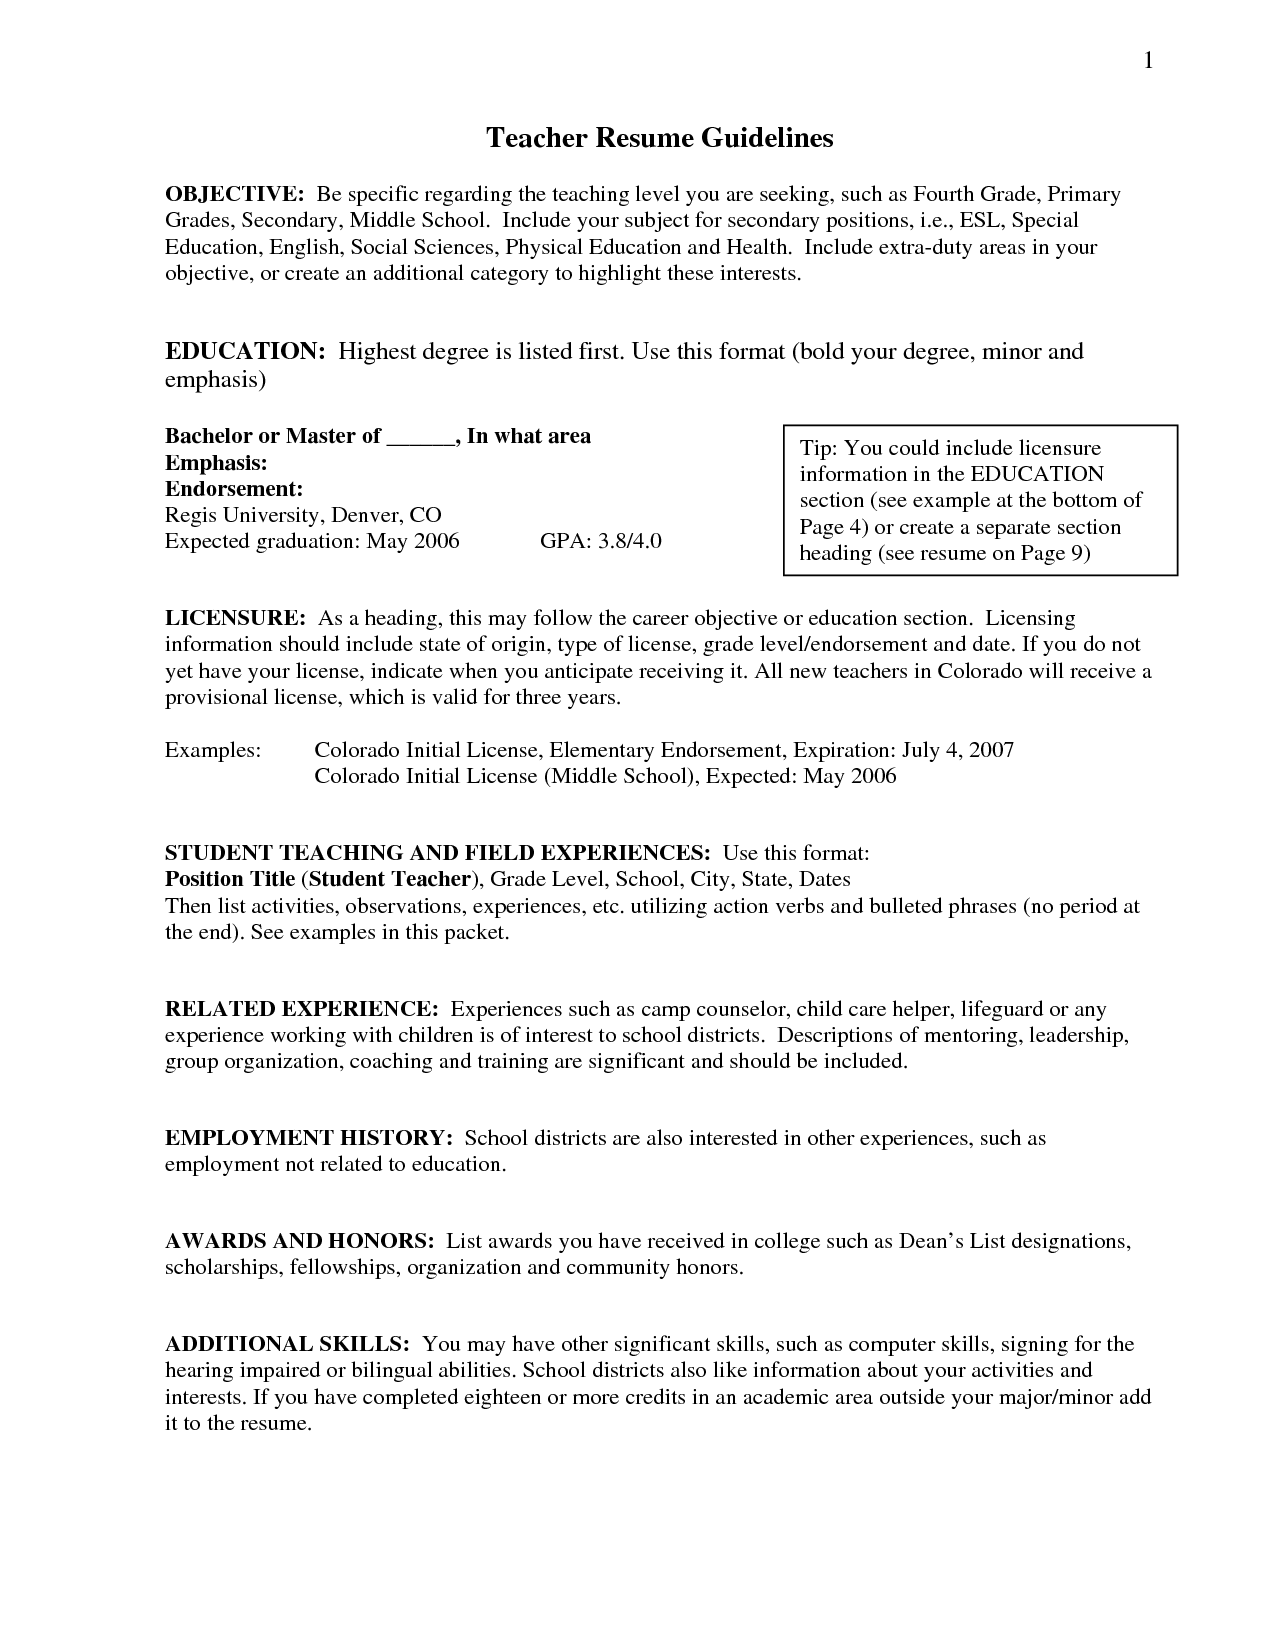 Resume Employment History Resume Objective Statement For Teacher  Httpwwwresumecareer